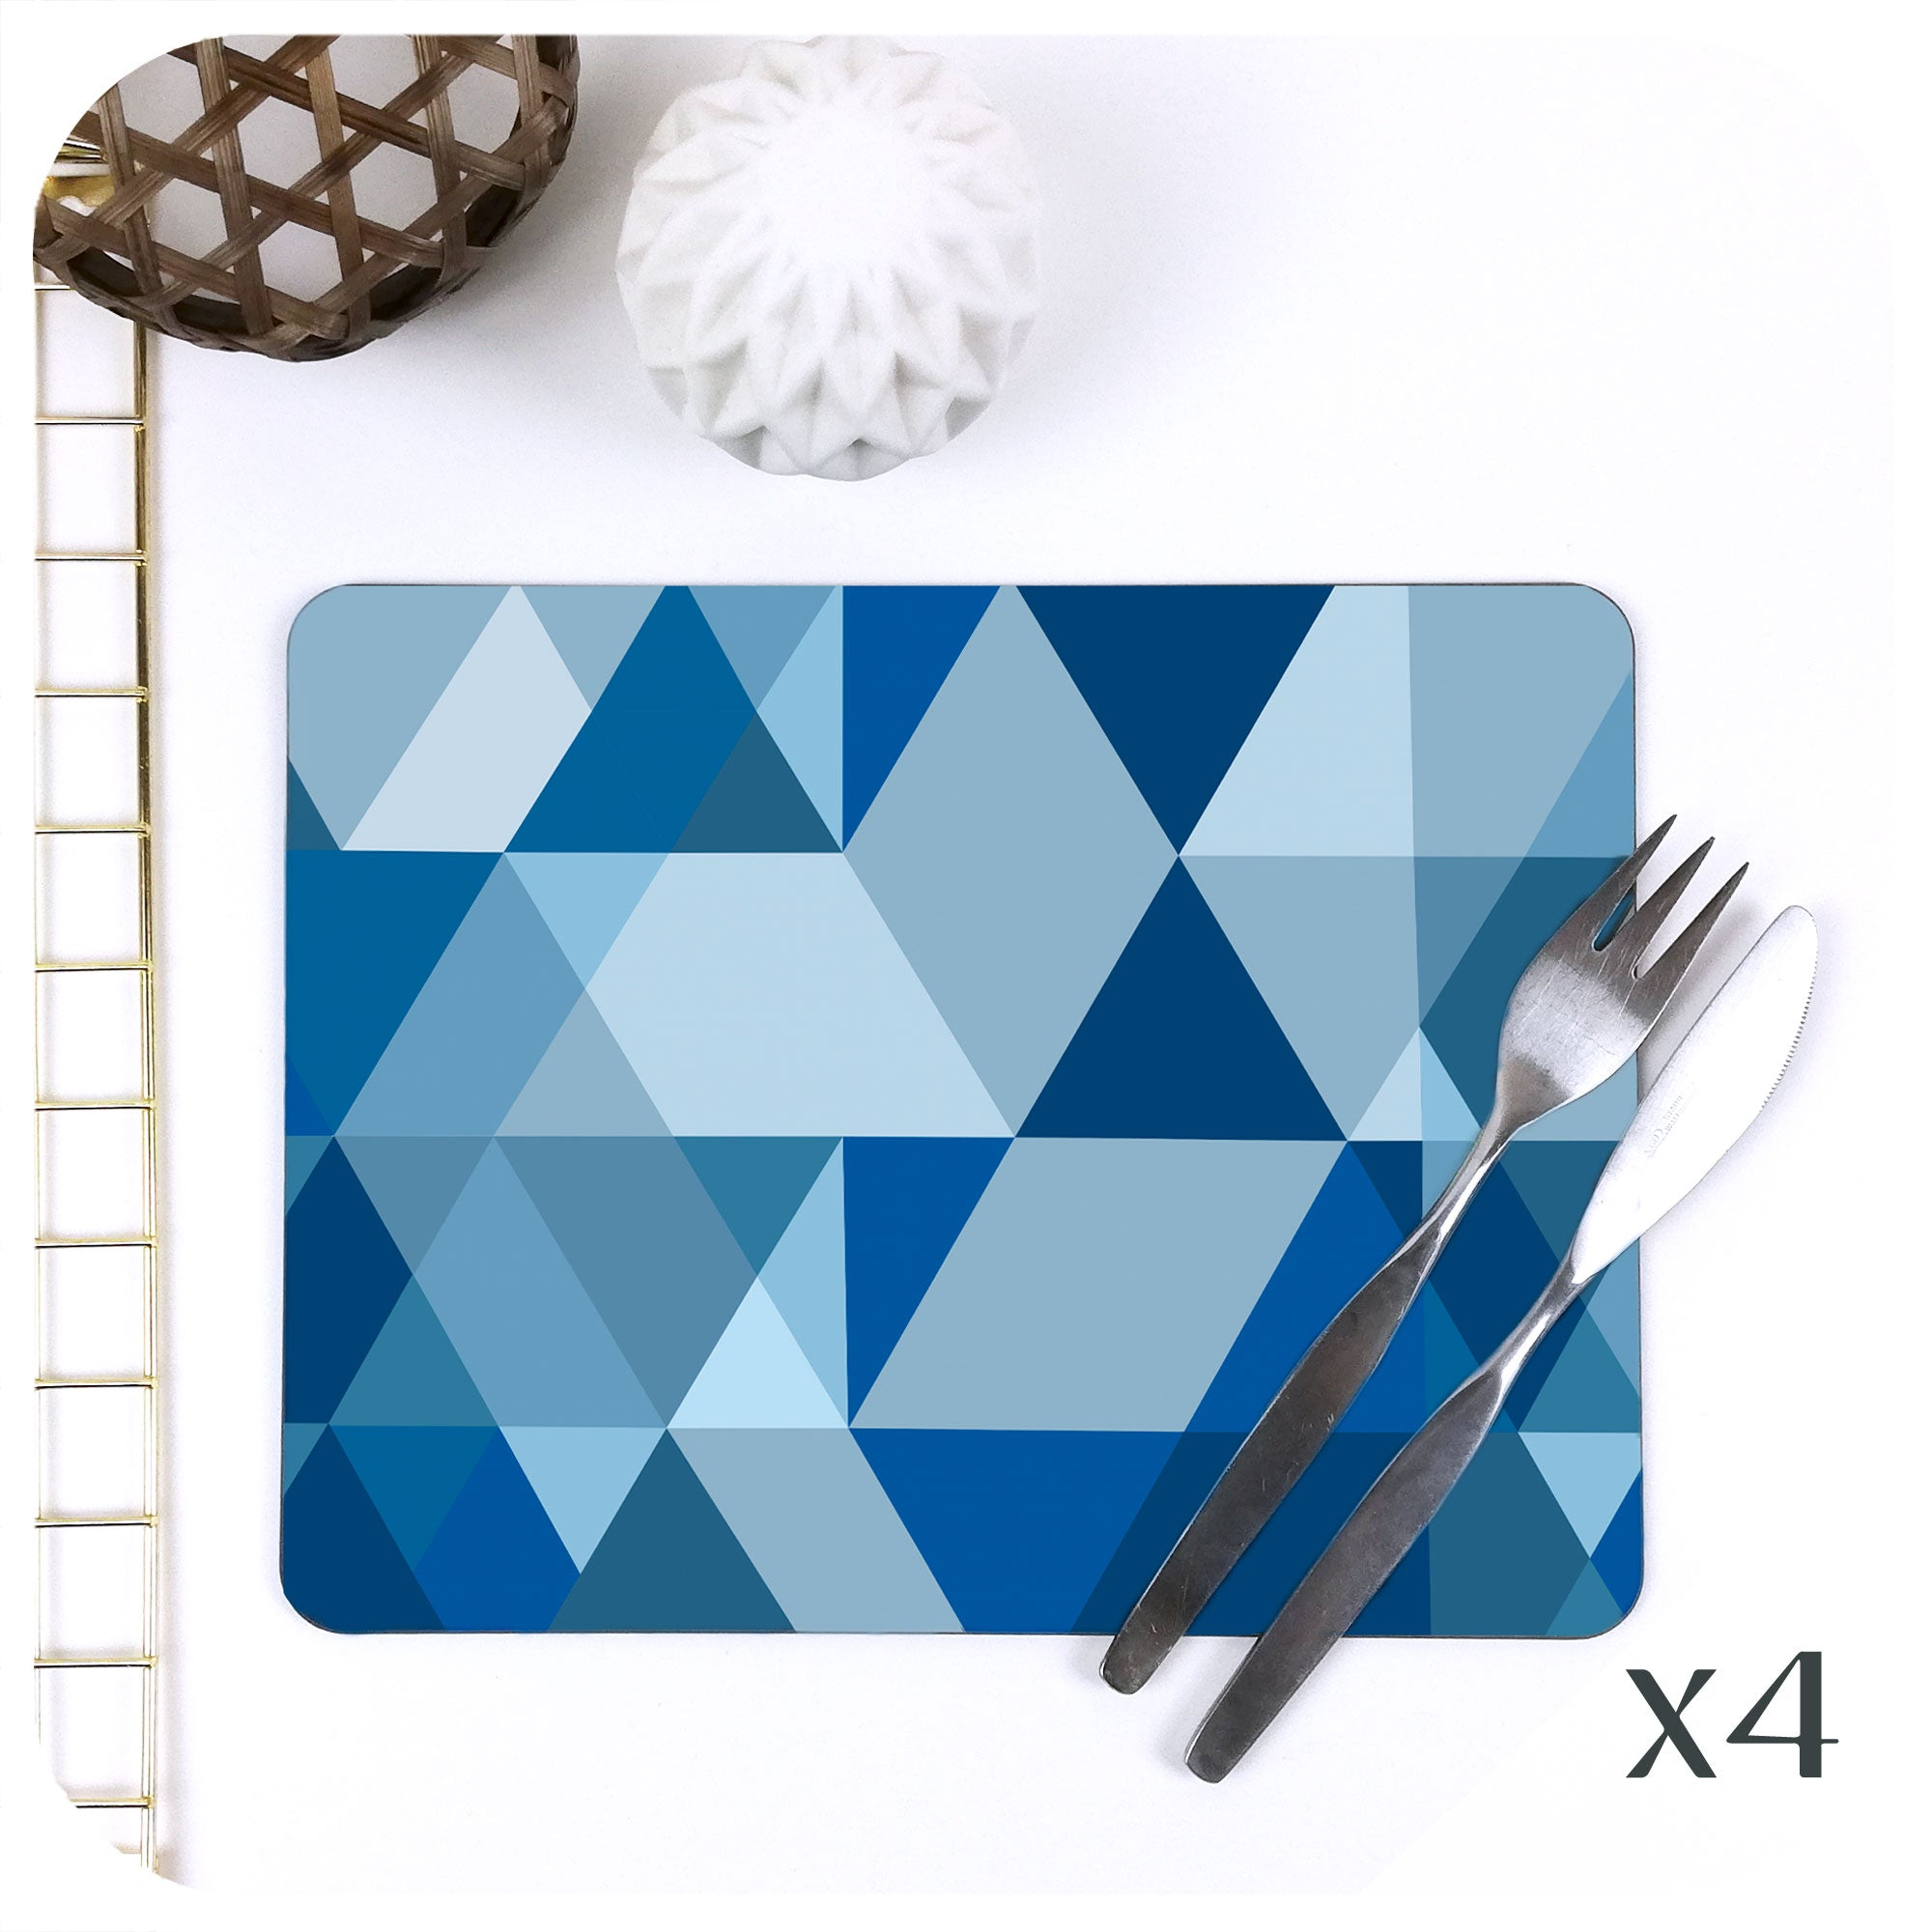 Scandi Geometric Placemats in Blue, set of 4 | The Inkabilly Emporium